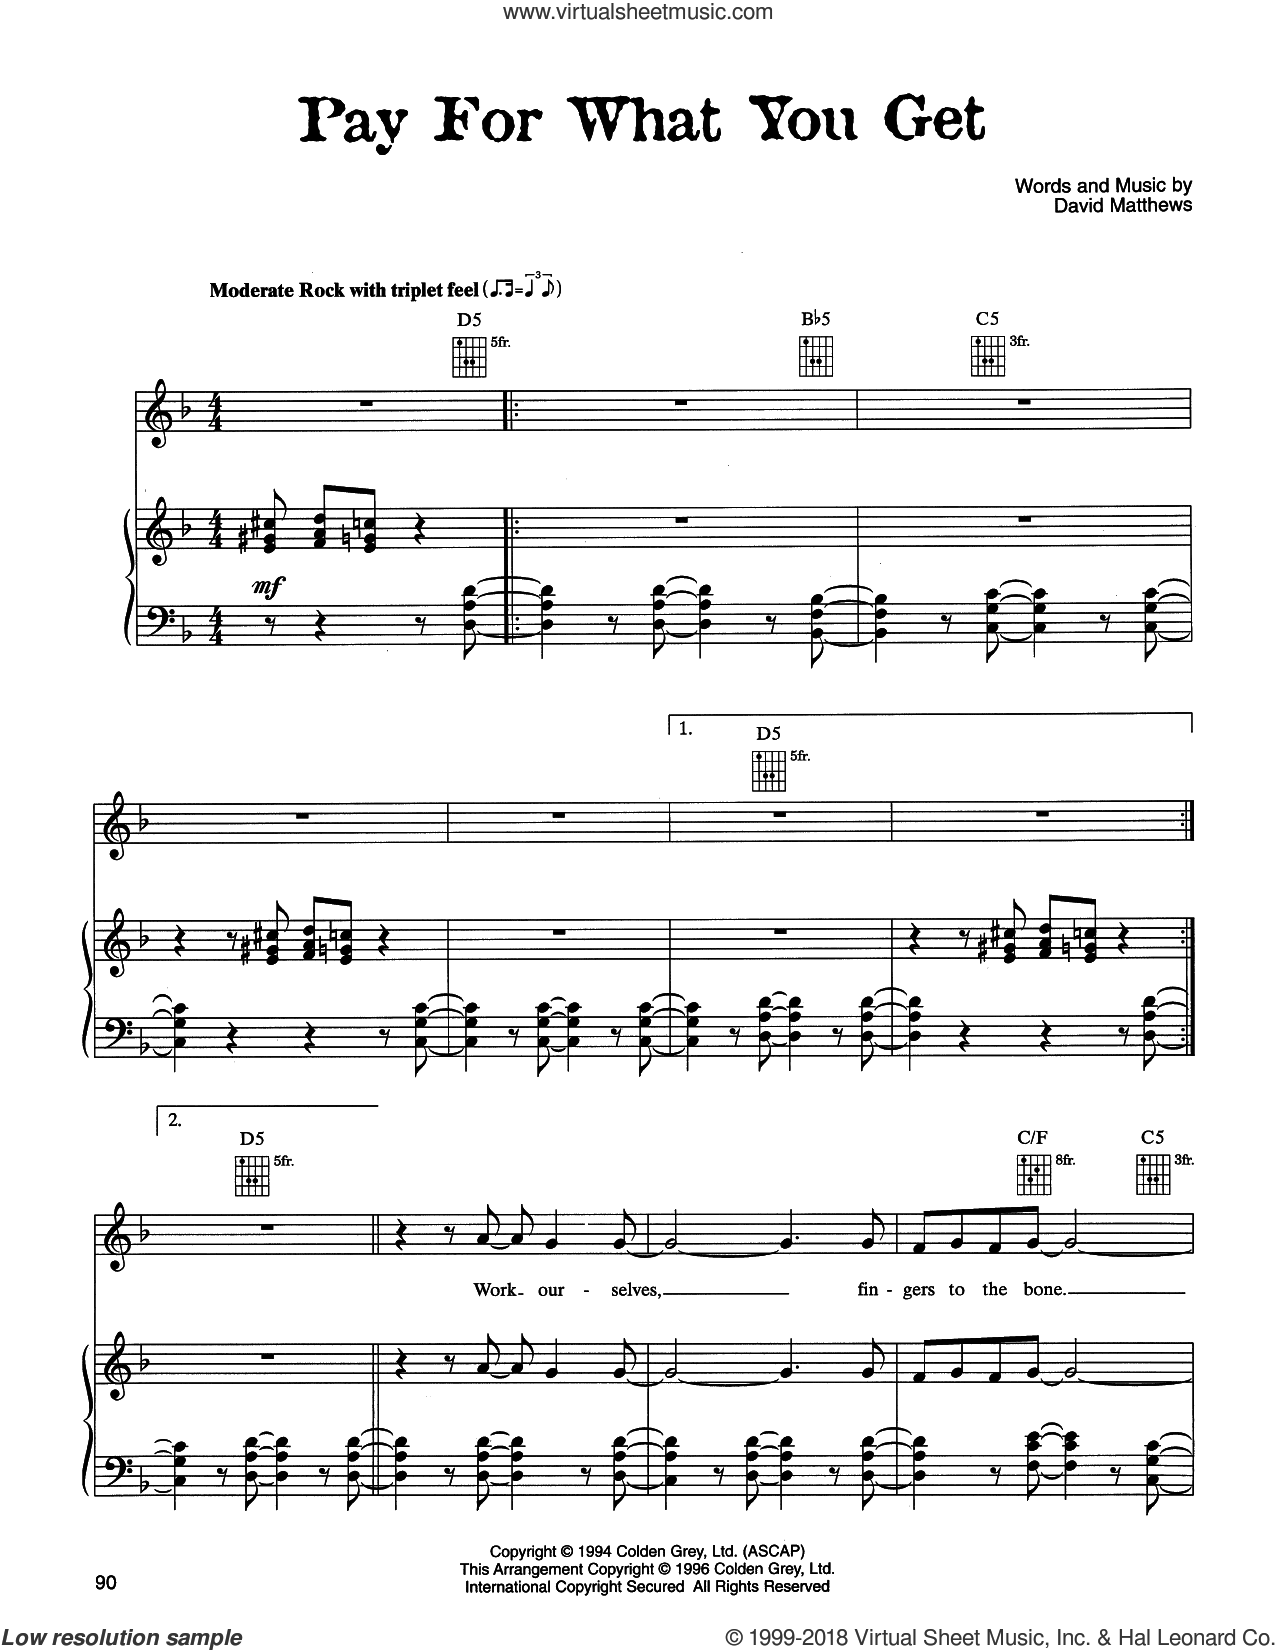 Pay For What You Get sheet music for voice, piano or guitar by Dave Matthews Band, intermediate skill level